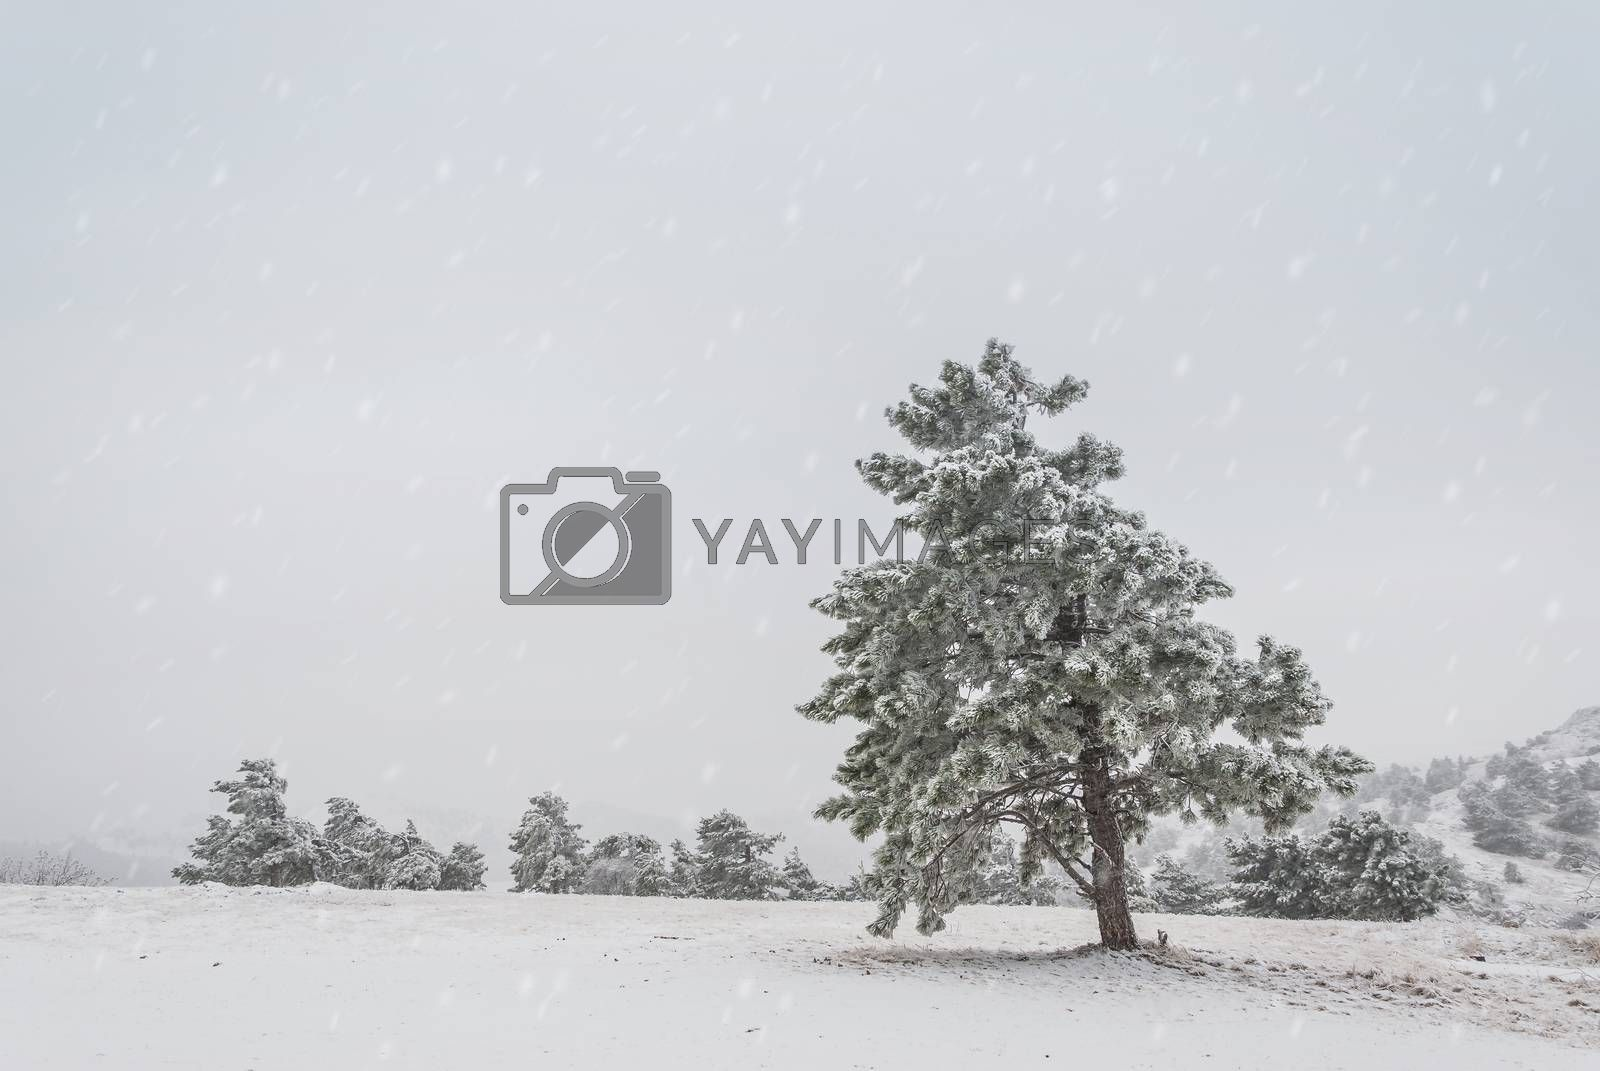 Surrealistic winter landscape with snowfall